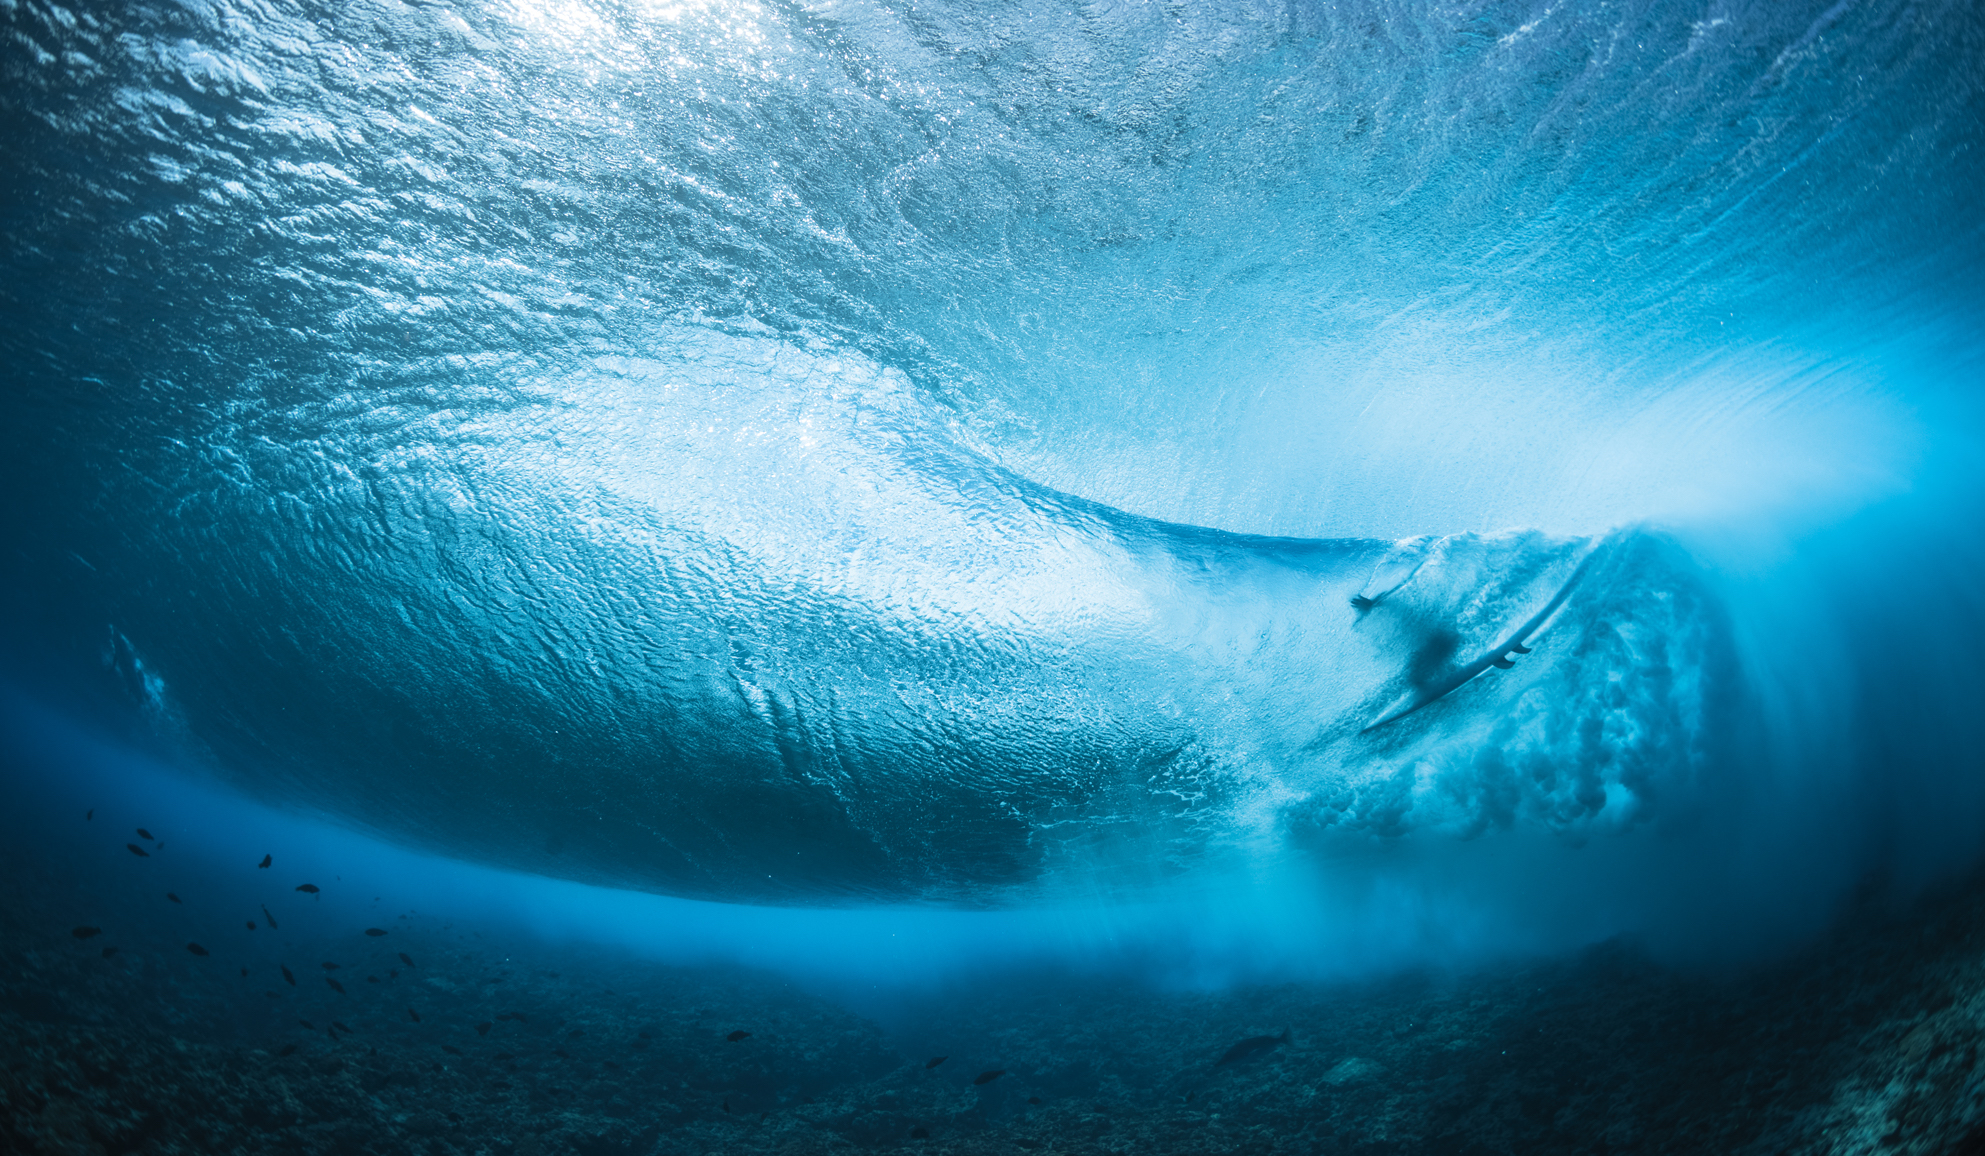 With the 2020 World Tour called off and travel restricted, Teahupo'o has seen a calmer-than-usual surf season—in terms of crowds, certainly not waves.